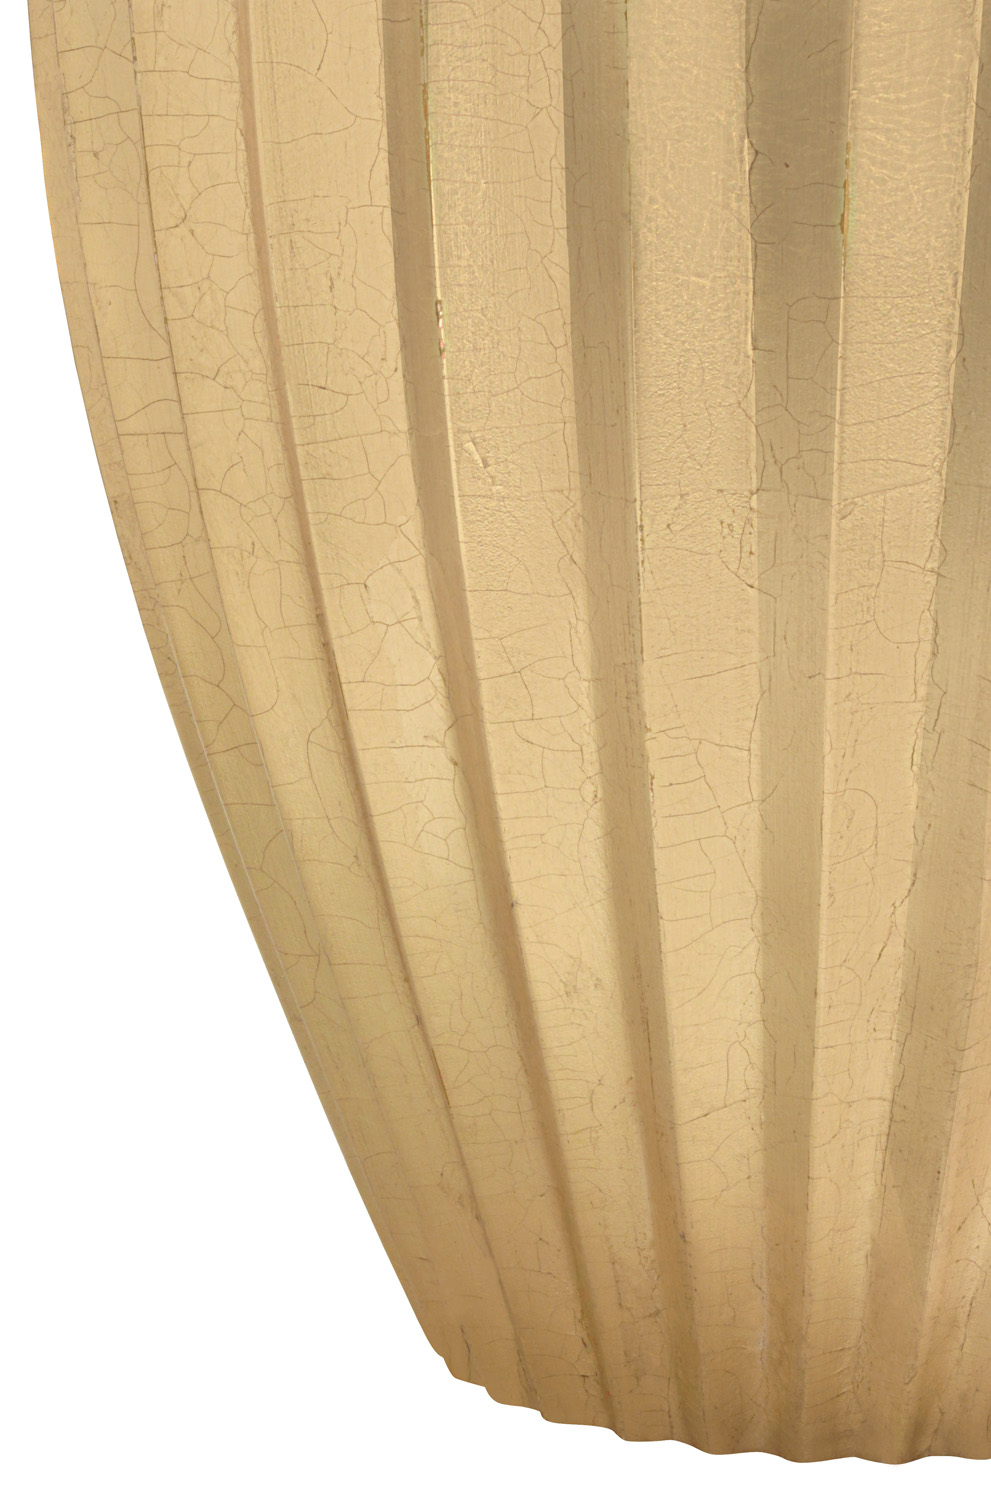 Springer 65 lrg gold fluted vases accessory137detail3 hires.jpg